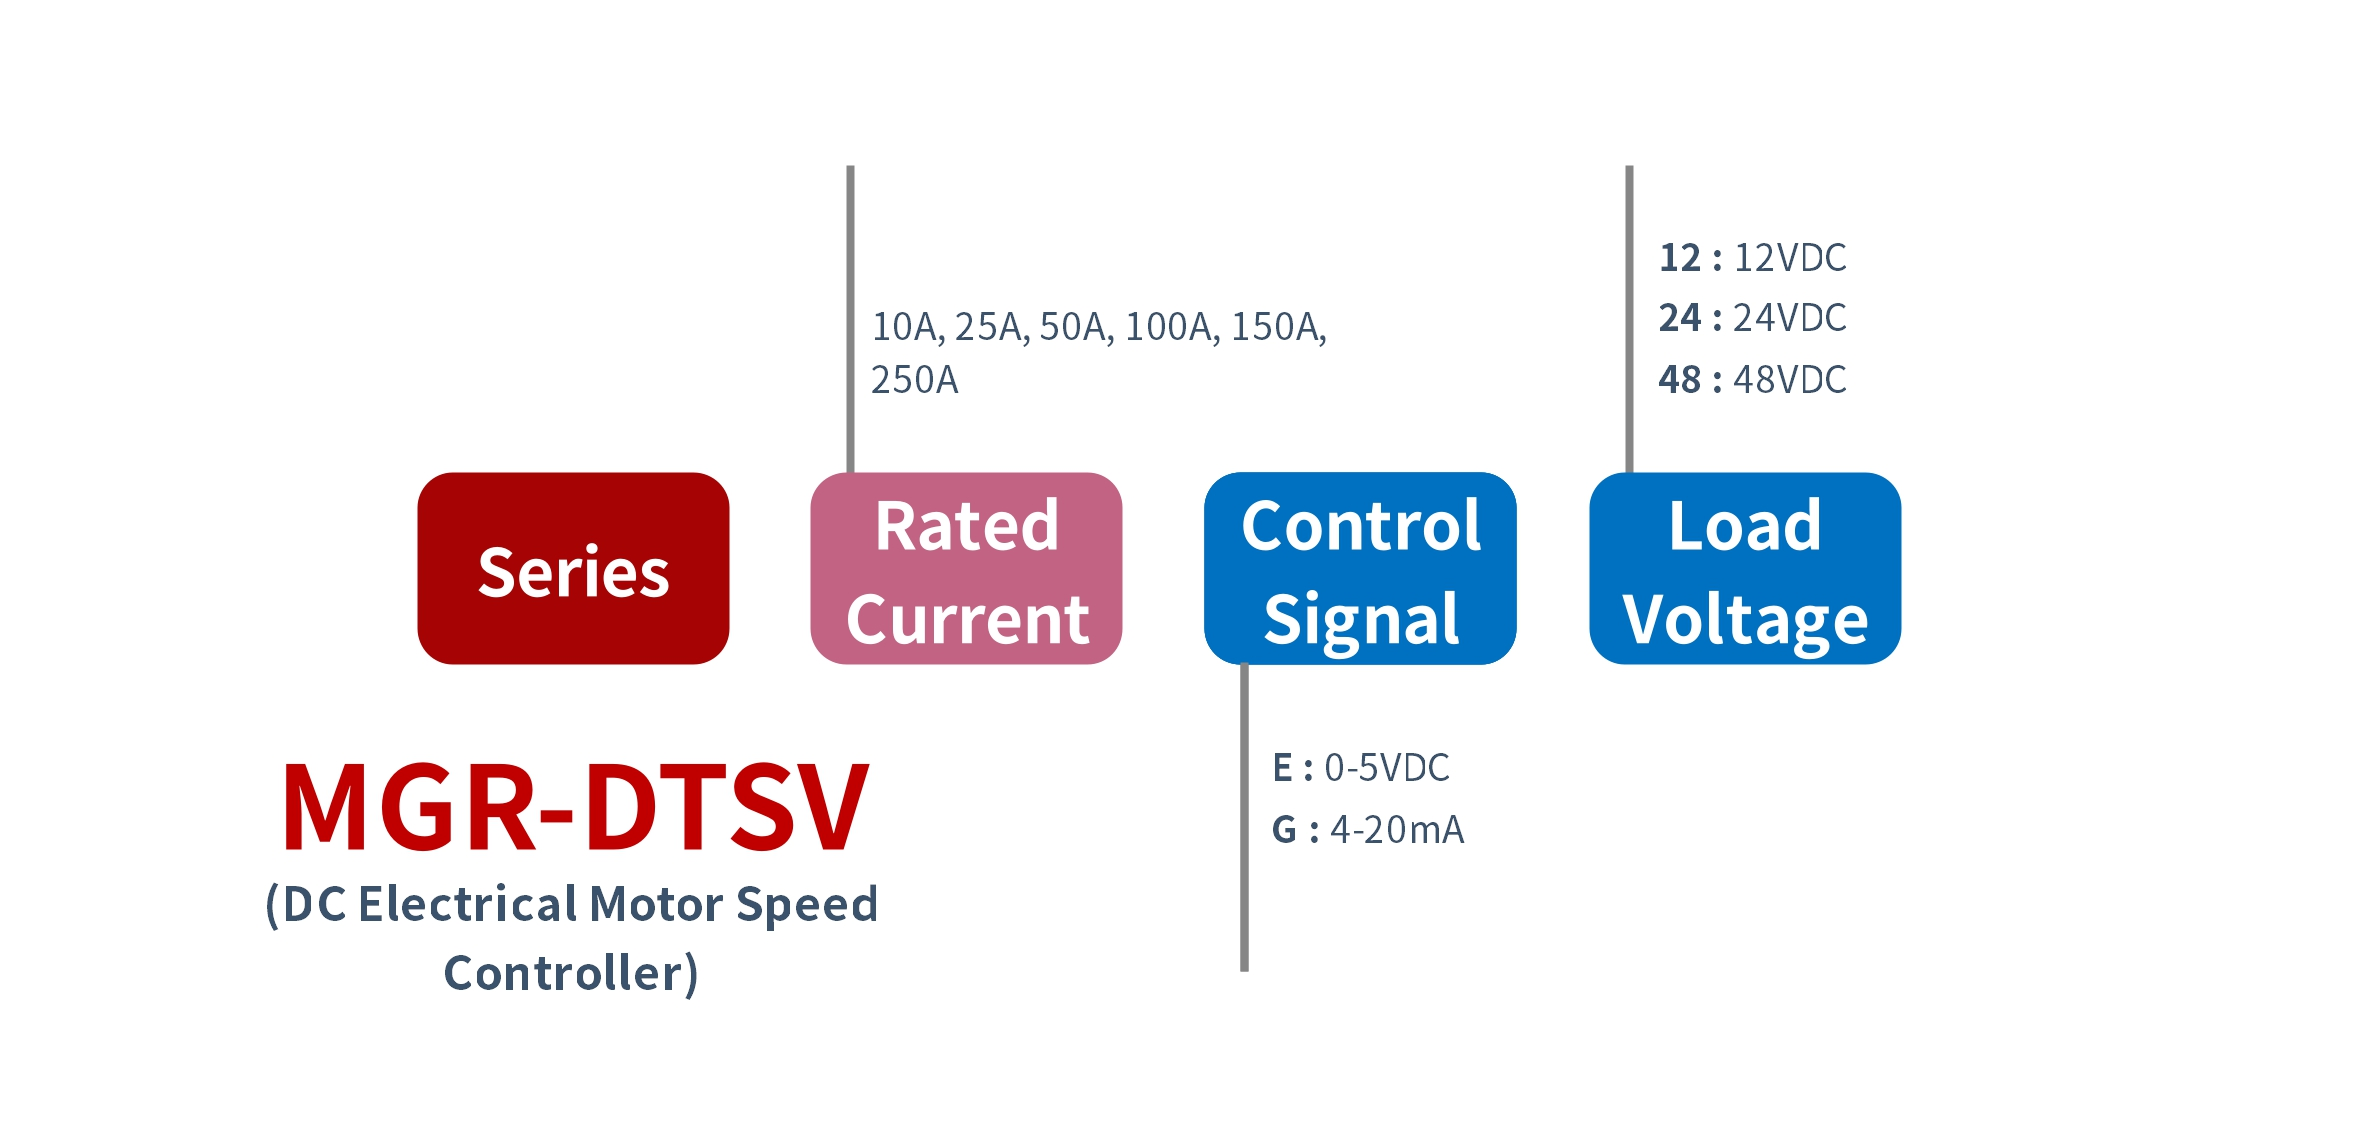 How to order MGR-DTSV Series Electrical Motor Controller